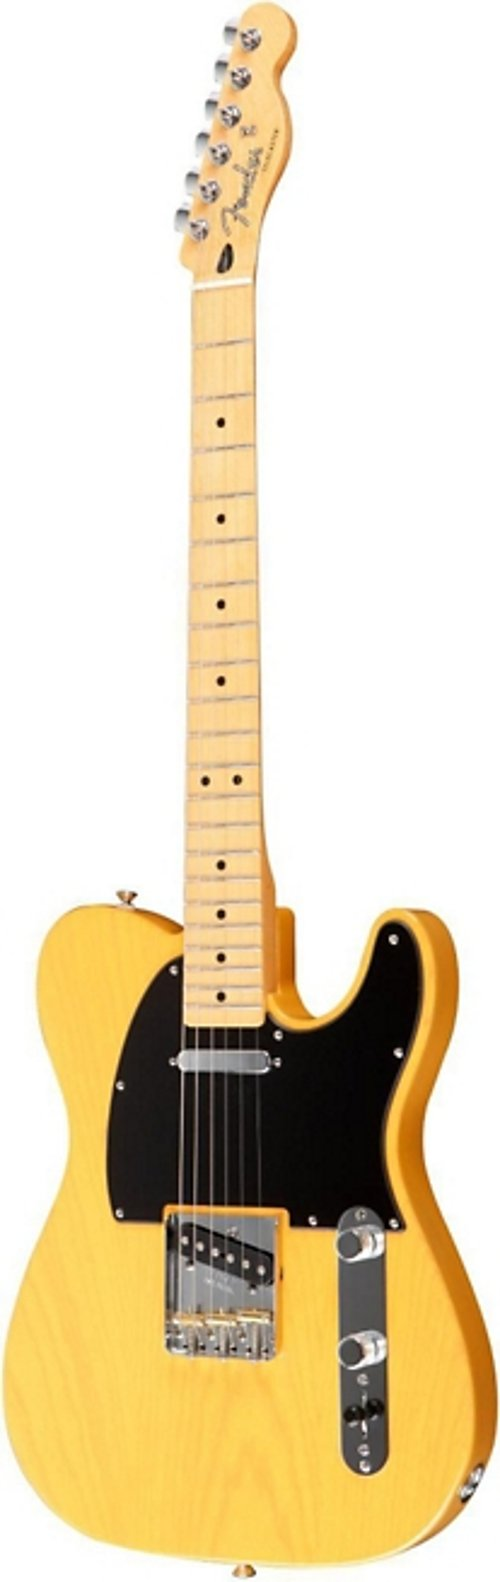 Standard Ash Telecaster Electric Guitar by Fender in Begin Again